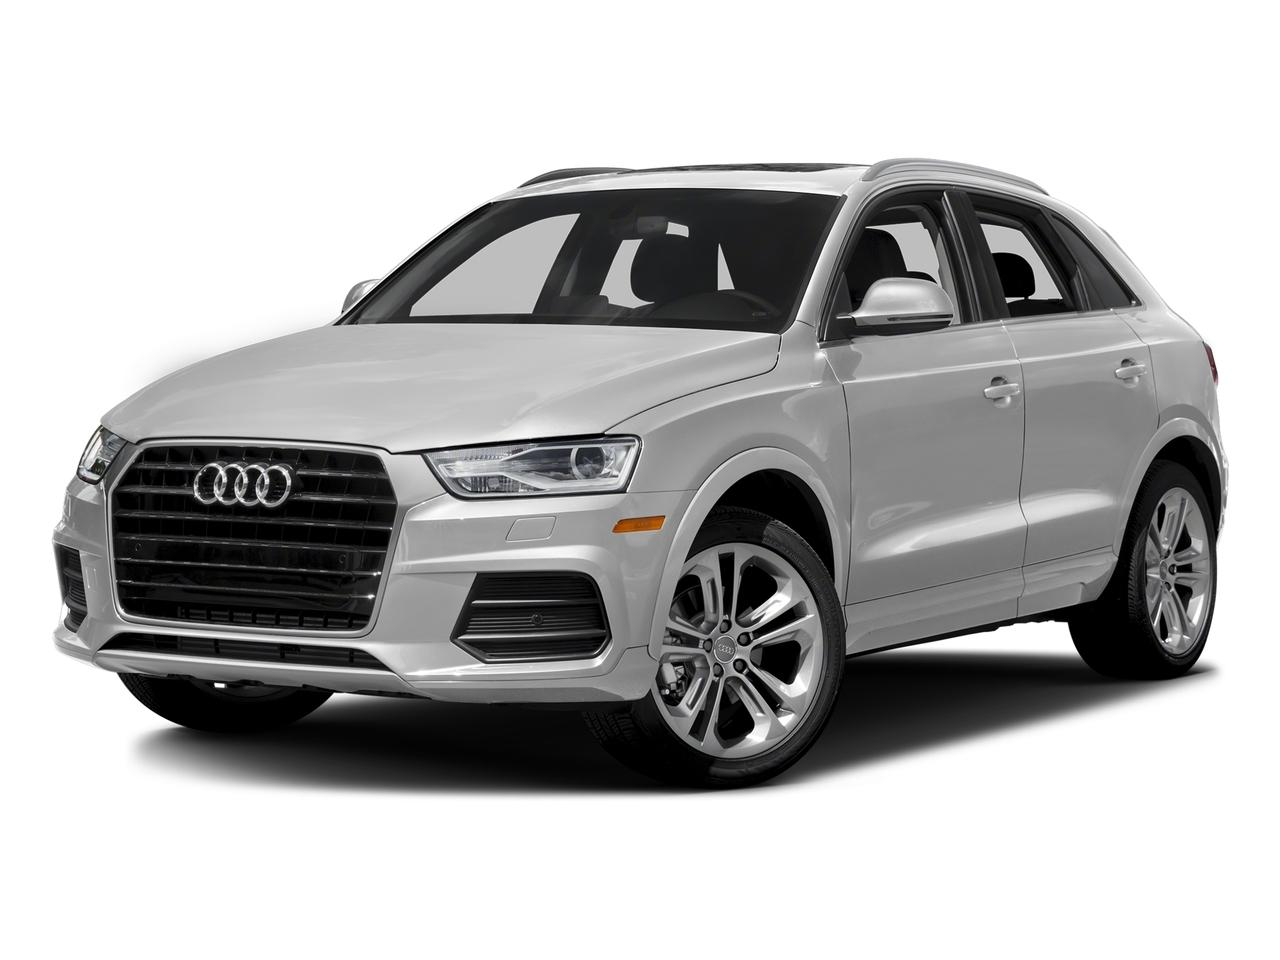 2017 Audi Q3 Vehicle Photo in Oshkosh, WI 54904